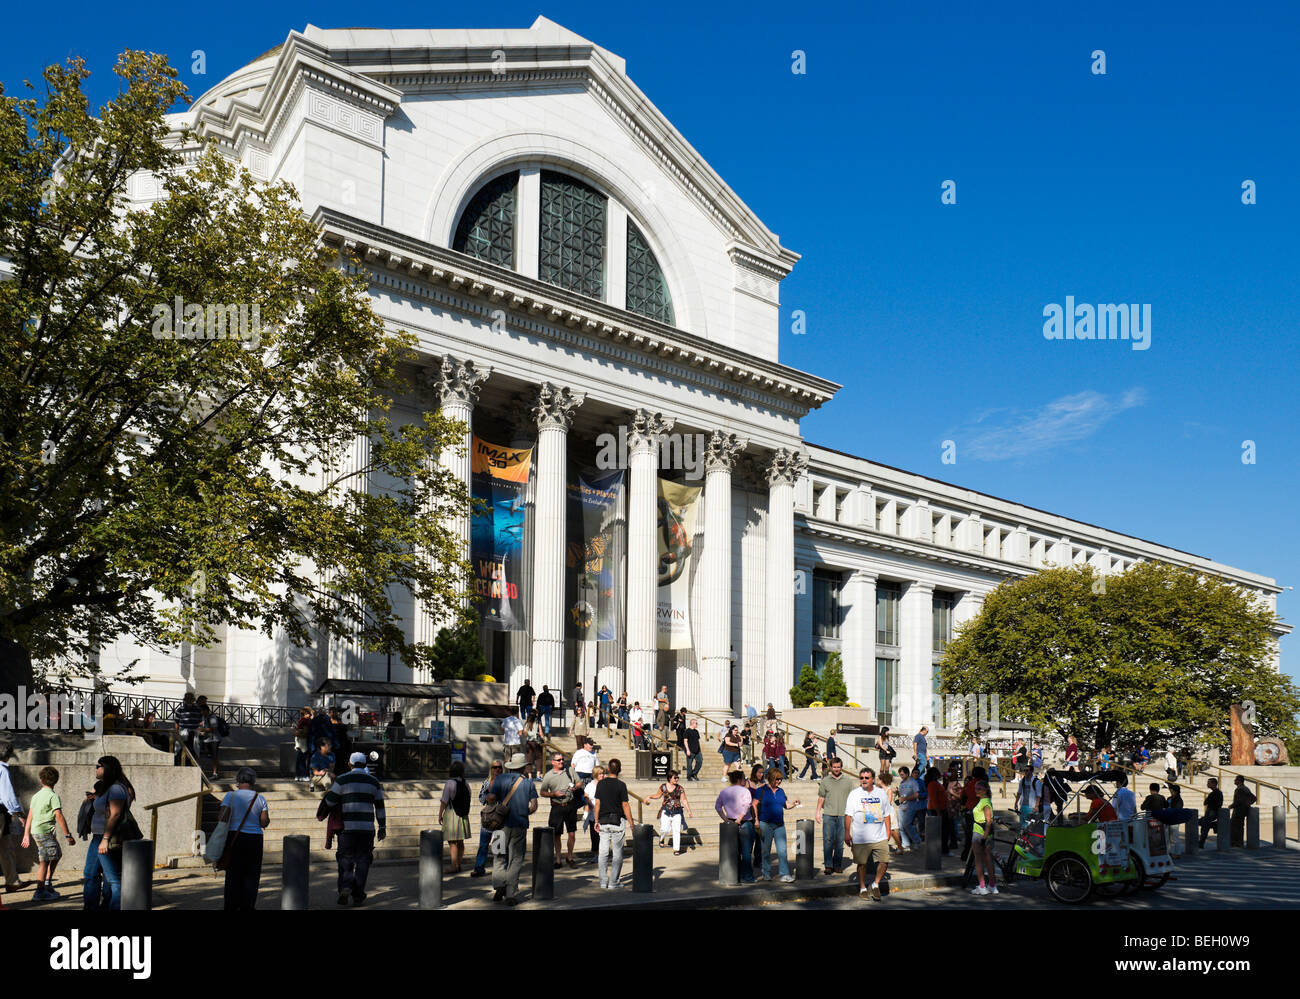 The Smithsonian Institutution National Museum of Natural History, the Mall, Washington DC, USA - Stock Image